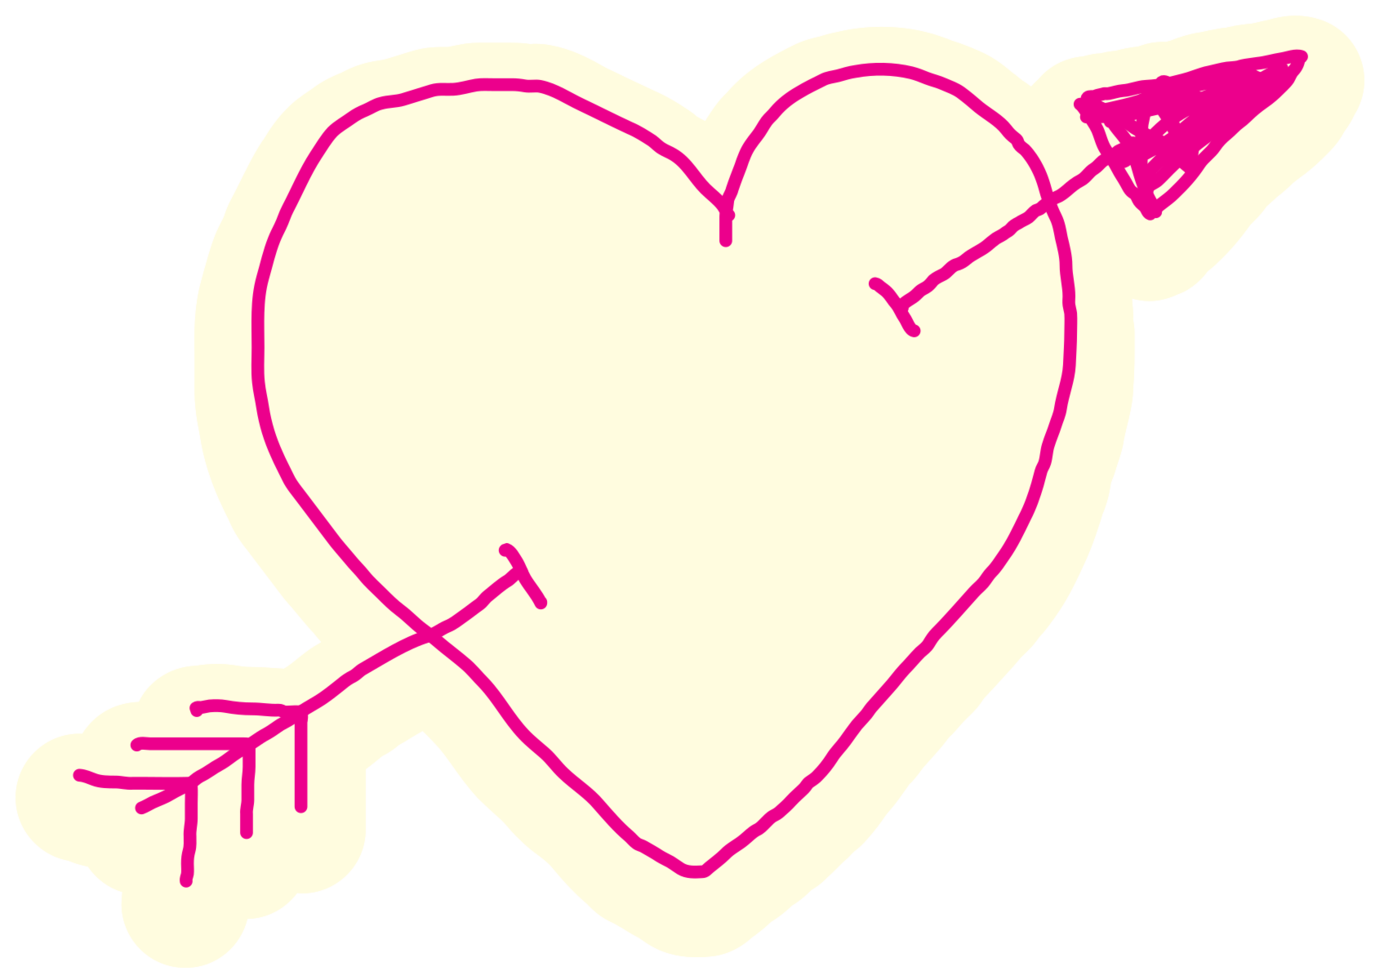 Heart hand drawn arrow png